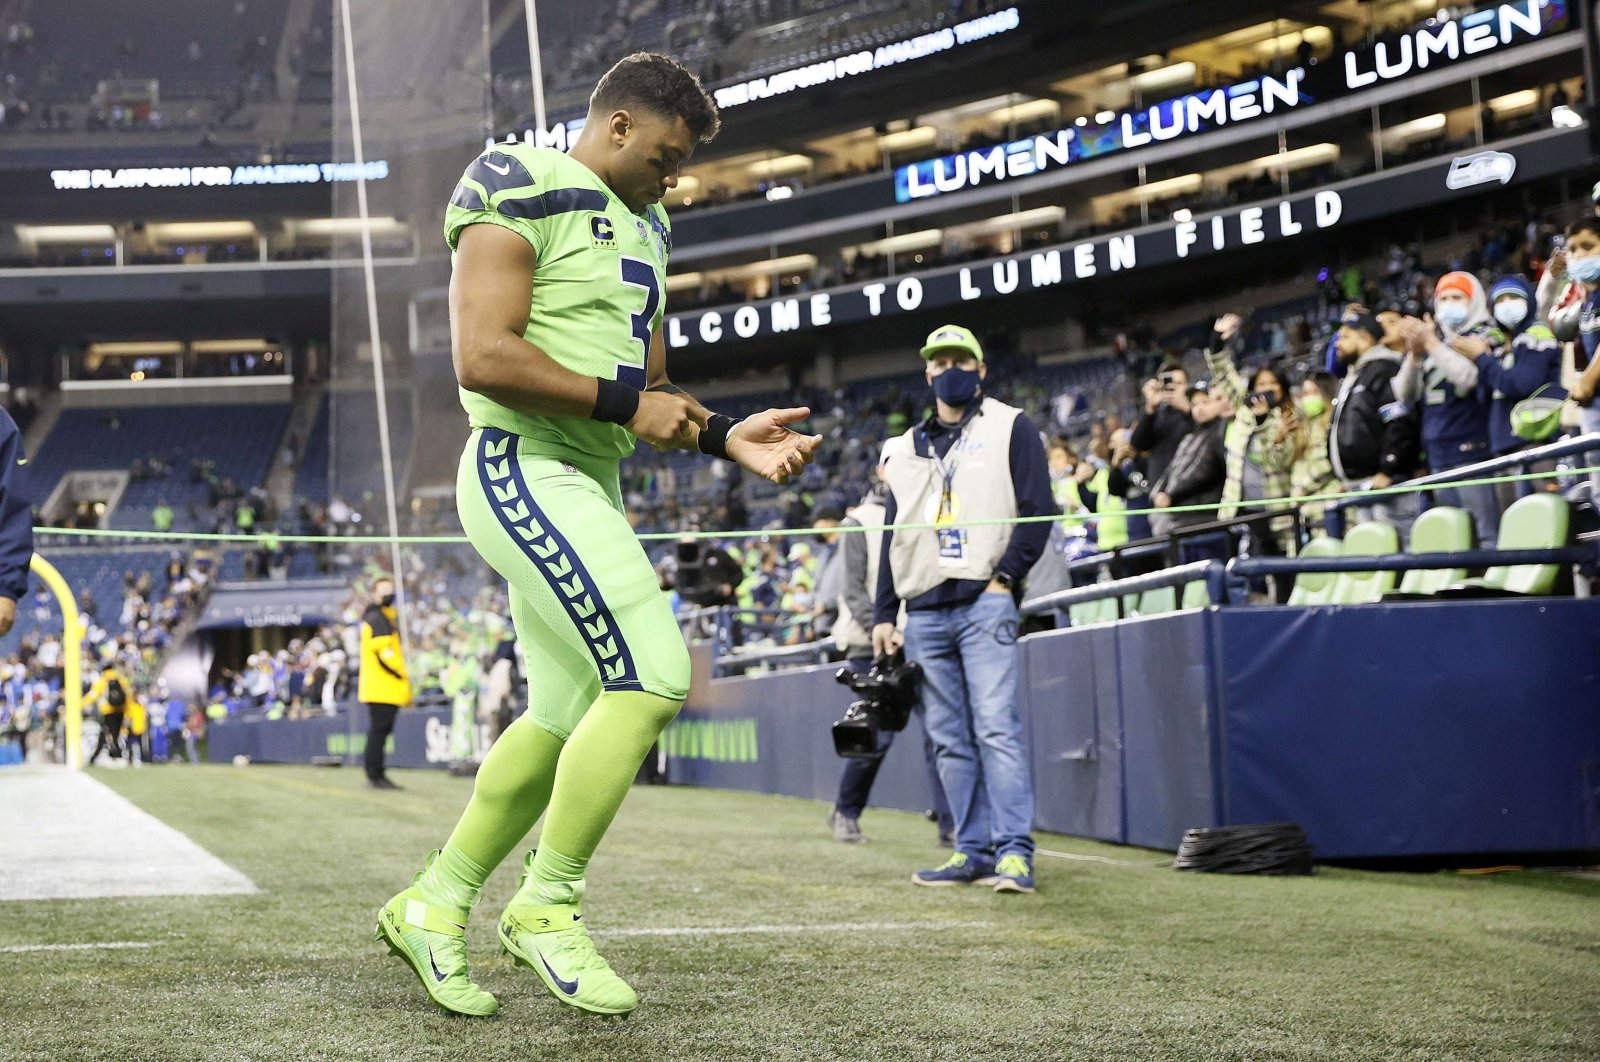 Russell Wilson (3) of the Seattle Seahawks walks off the field after losing to the Los Angeles Rams 26-17 at Lumen Field, Seattle, Washington, U.S., Oct. 7, 2021. (AFP Photo)